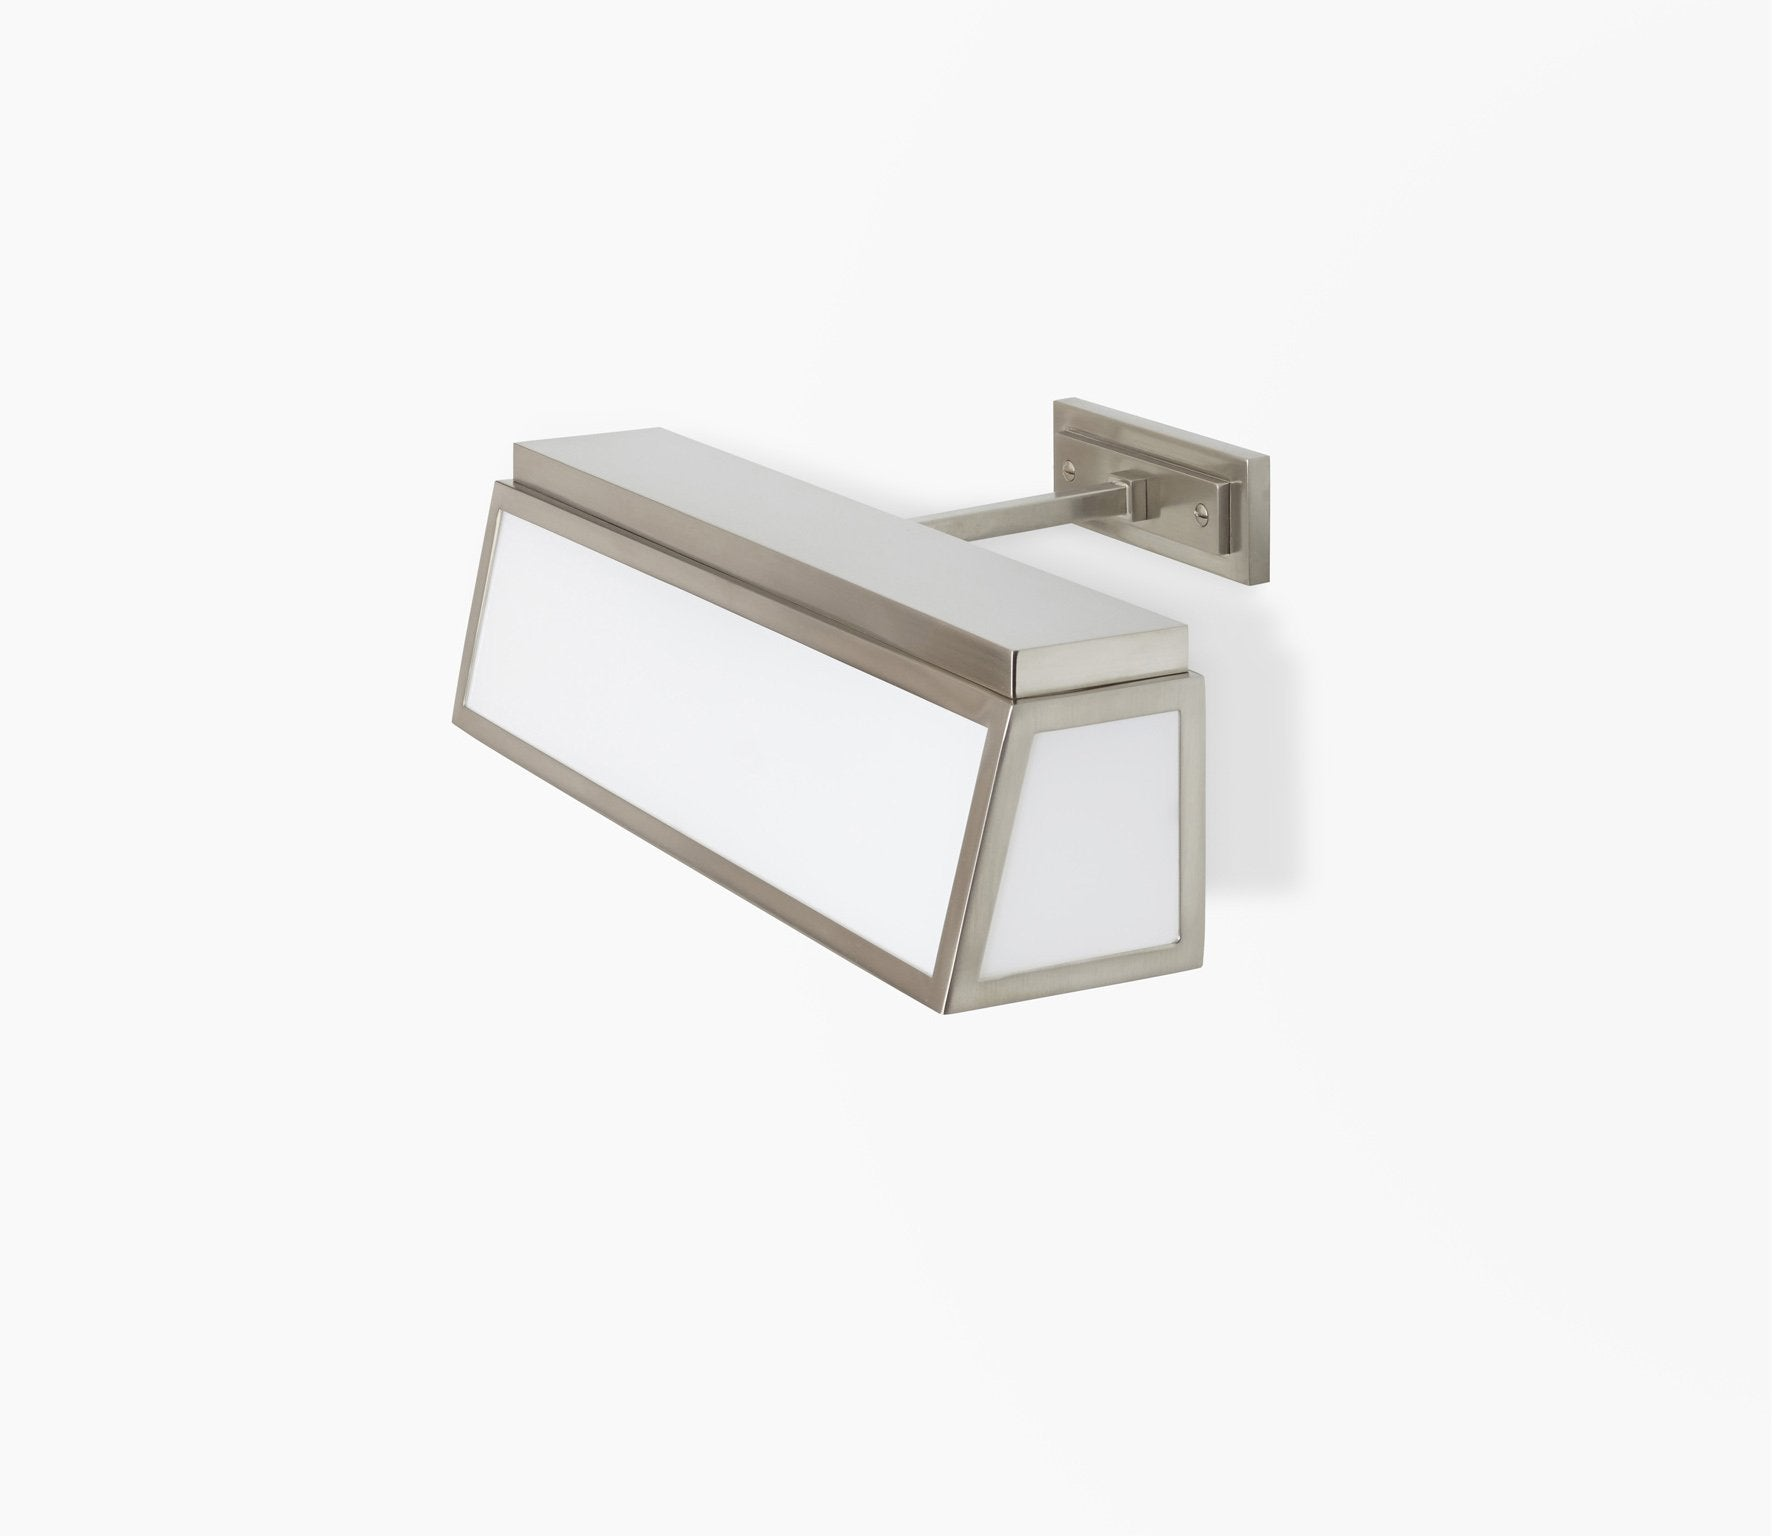 Strand Wall Light Product Image 5